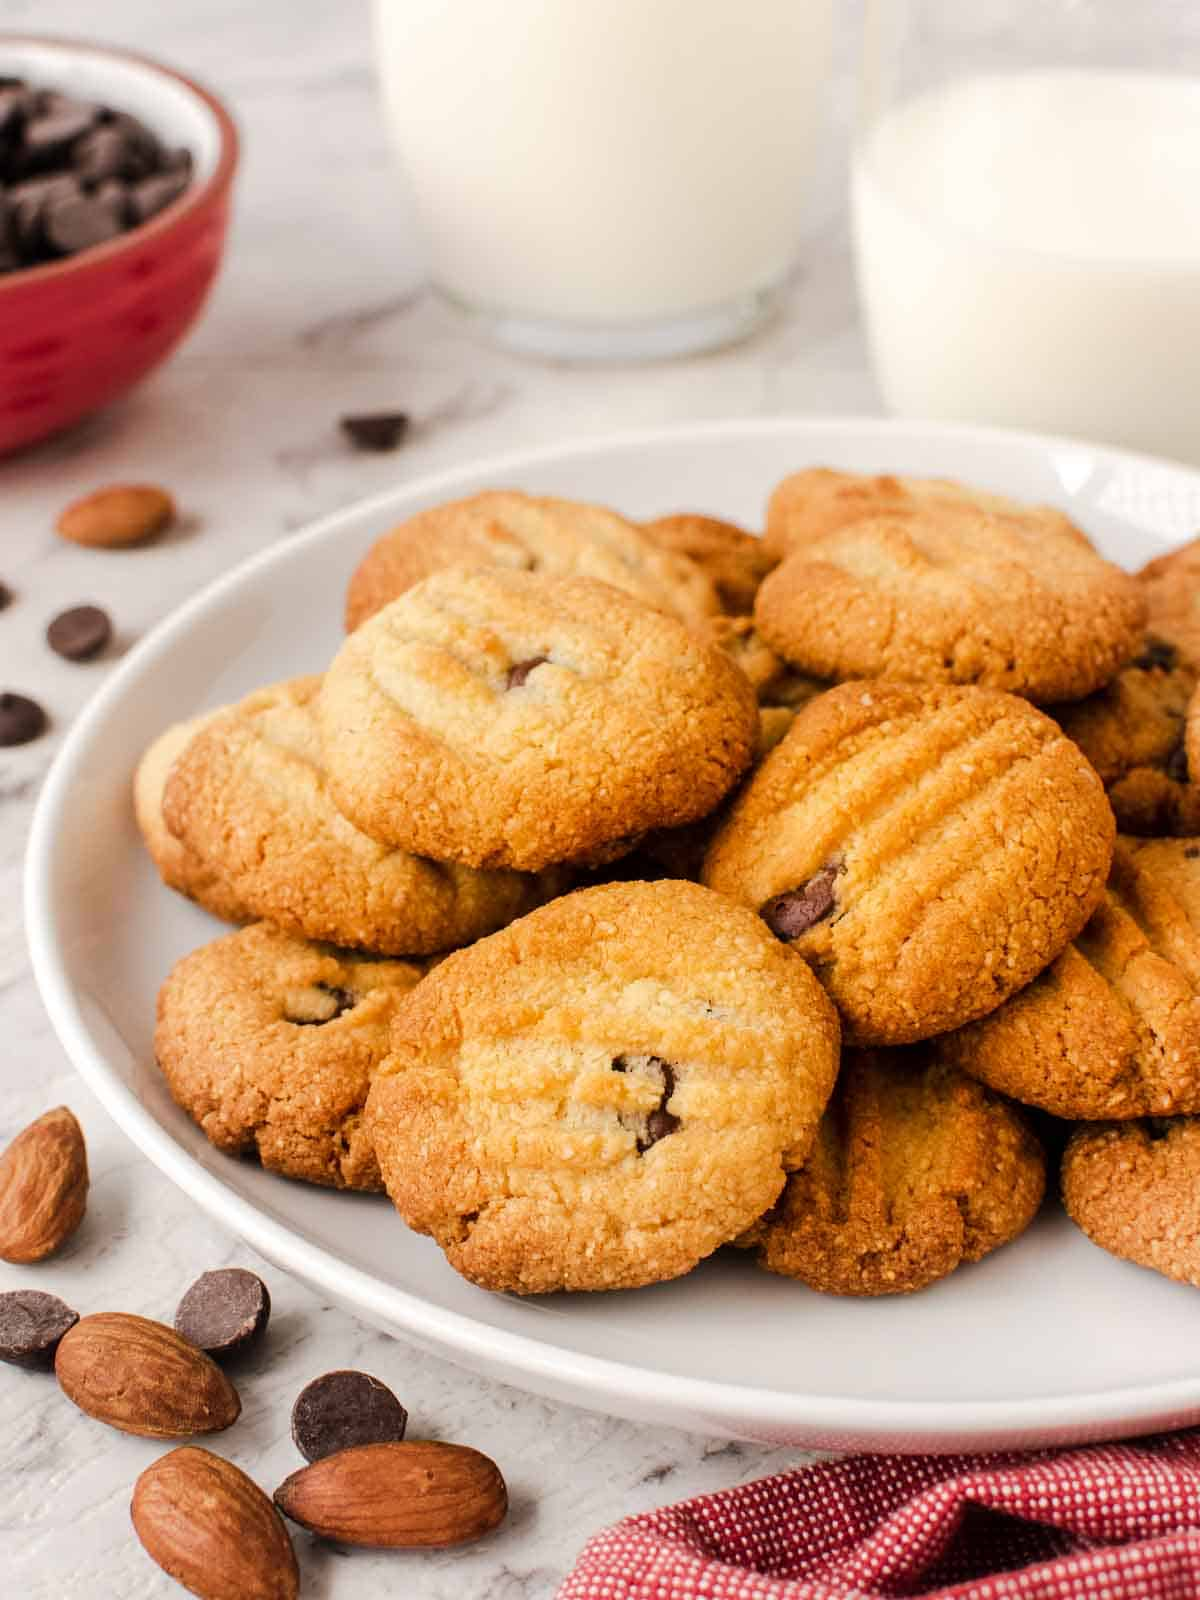 cookies with chocolate bits showing through on a white plate with choc chips and almonds scattered nearby.